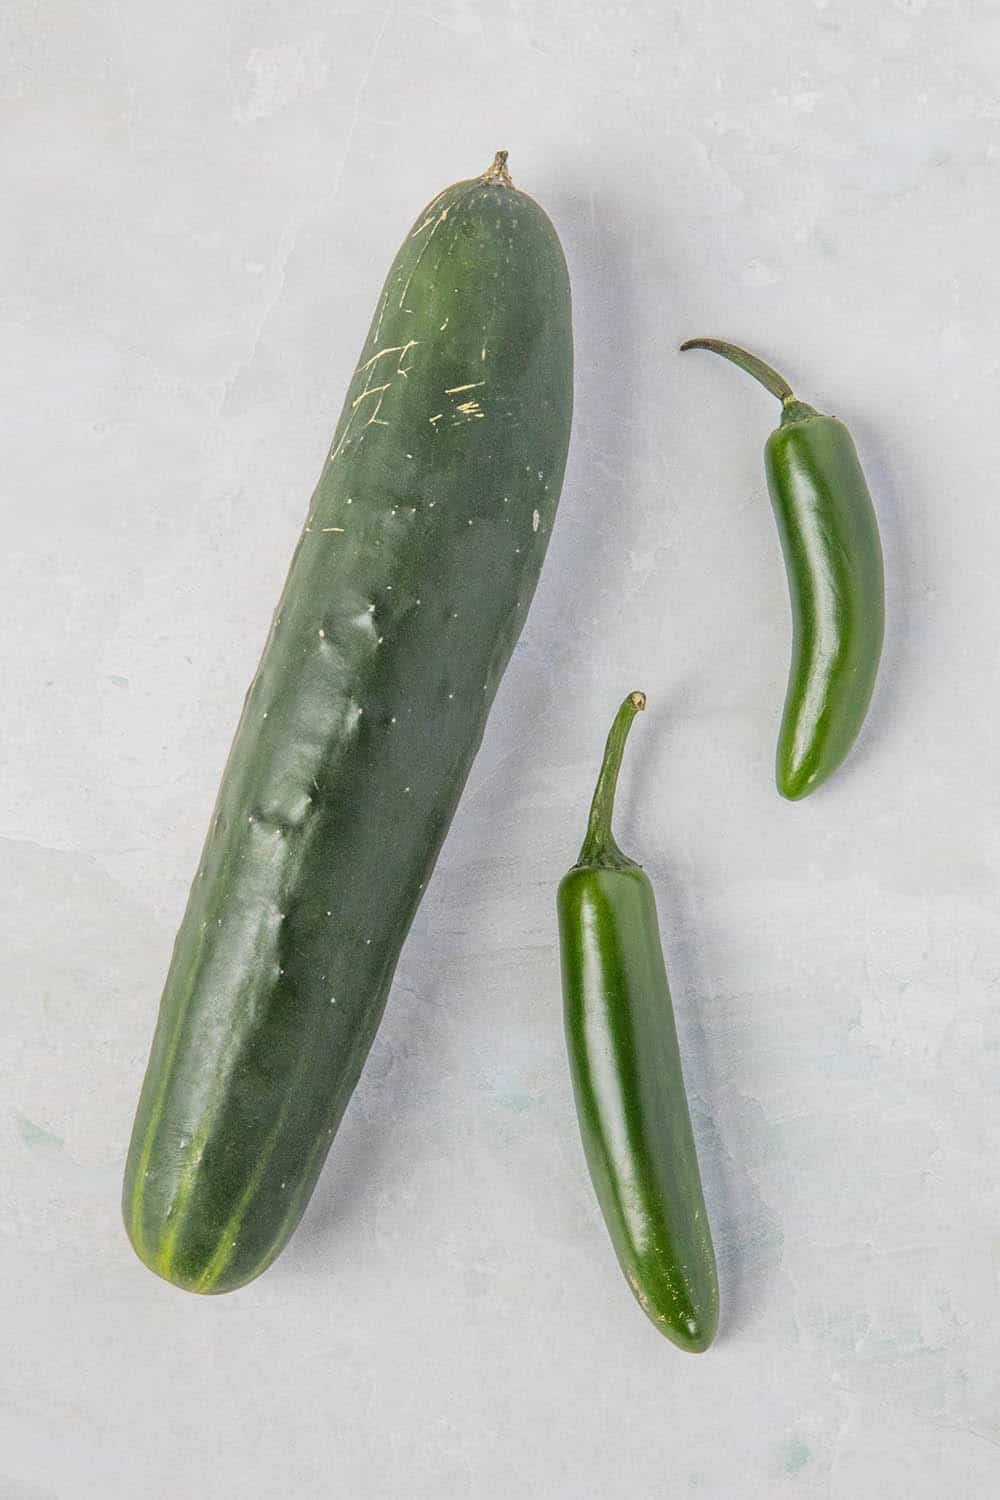 Cucumbers and serrano peppers